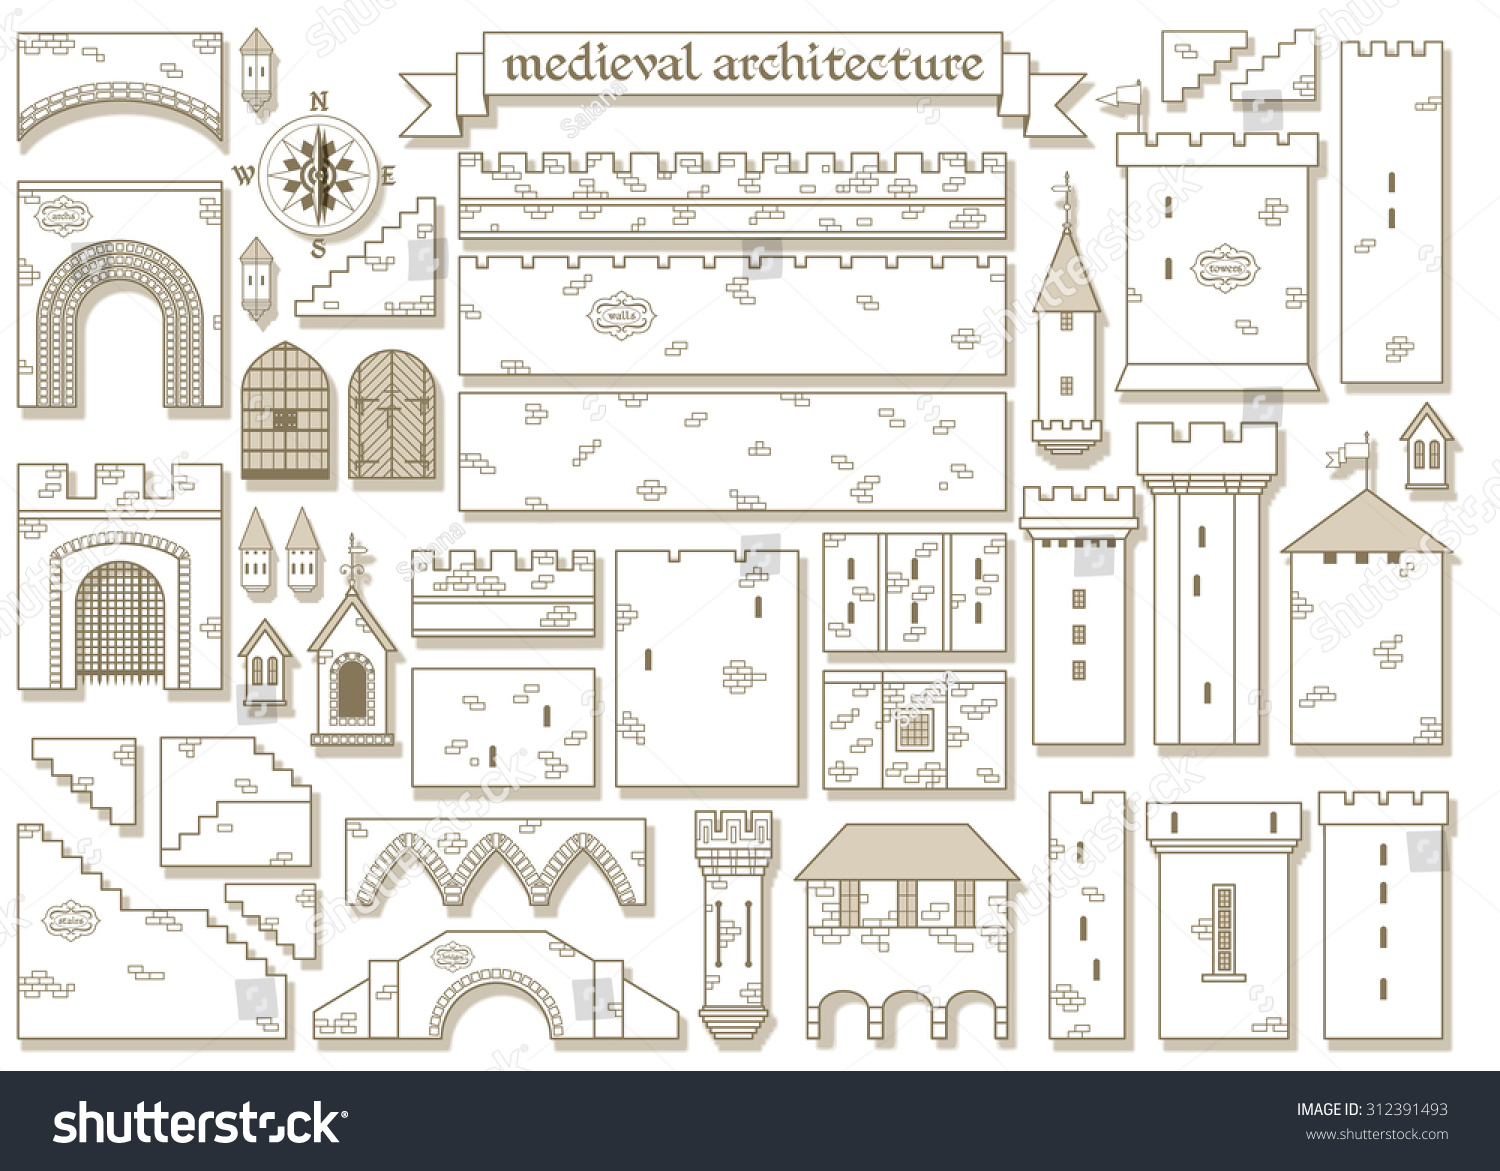 Vector Illustration Graphic Architectural Elements Of The